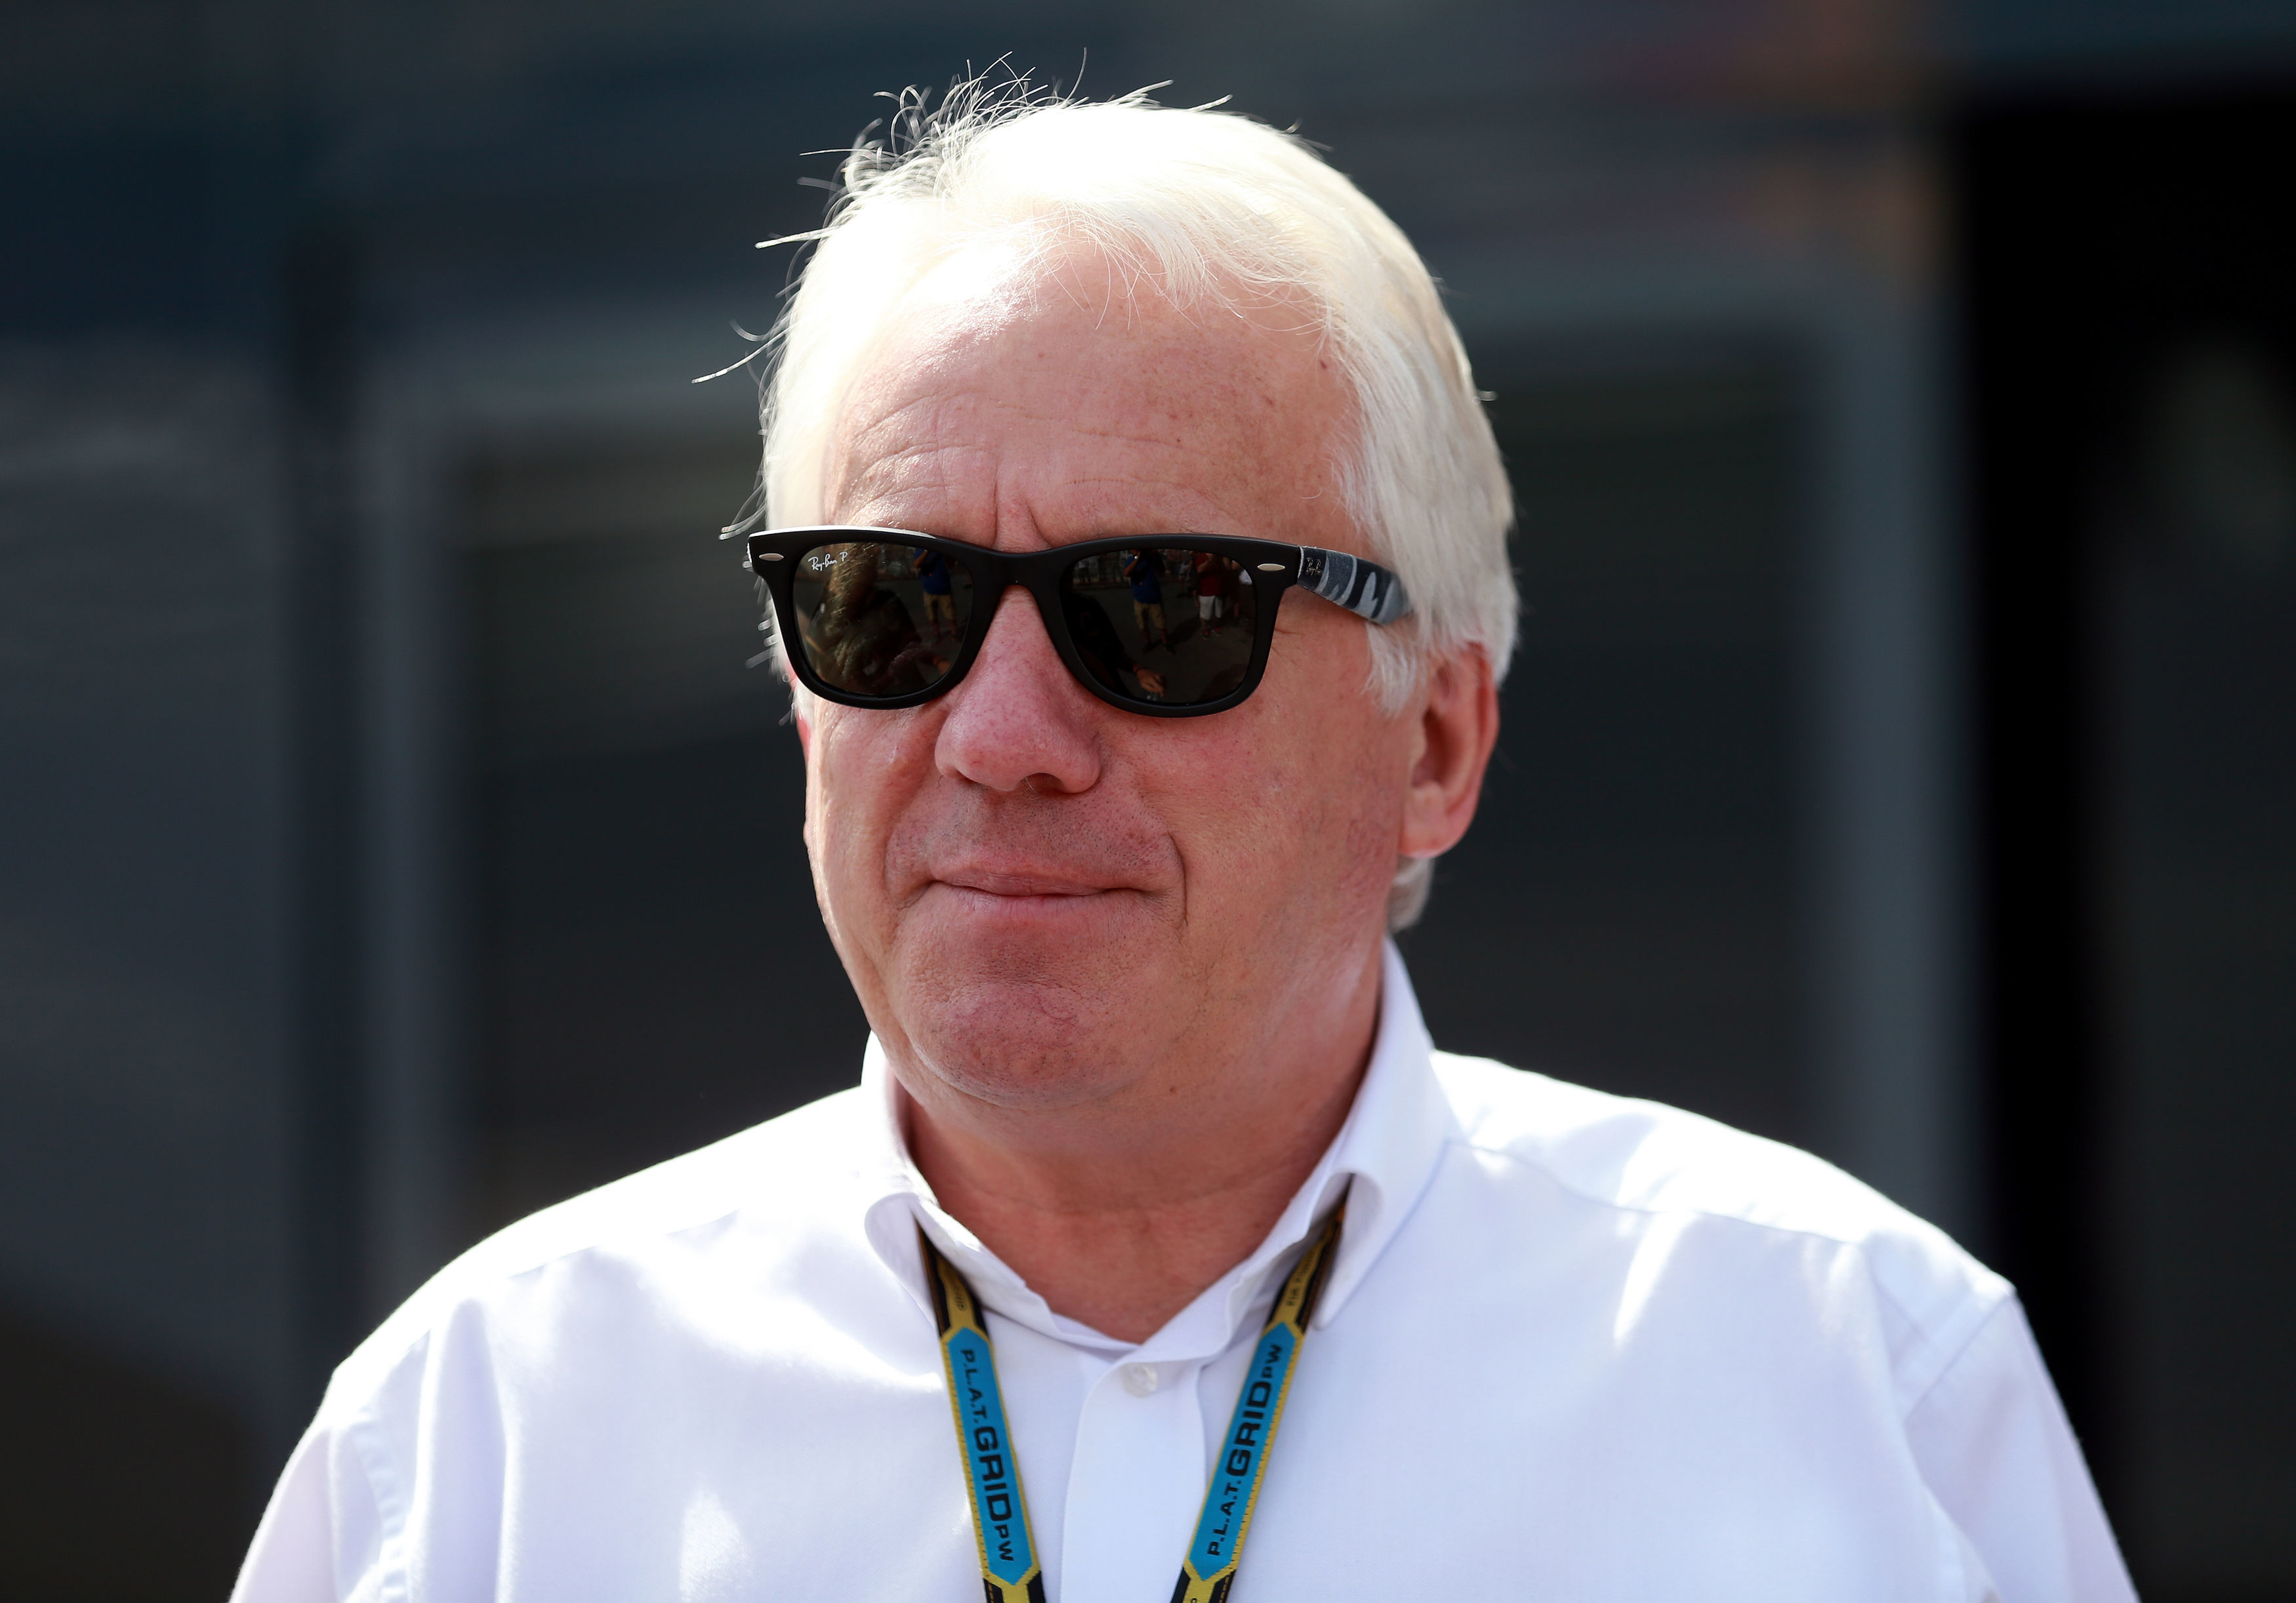 Article image for F1 race director Charlie Whiting has died on the eve of the Melbourne Grand Prix